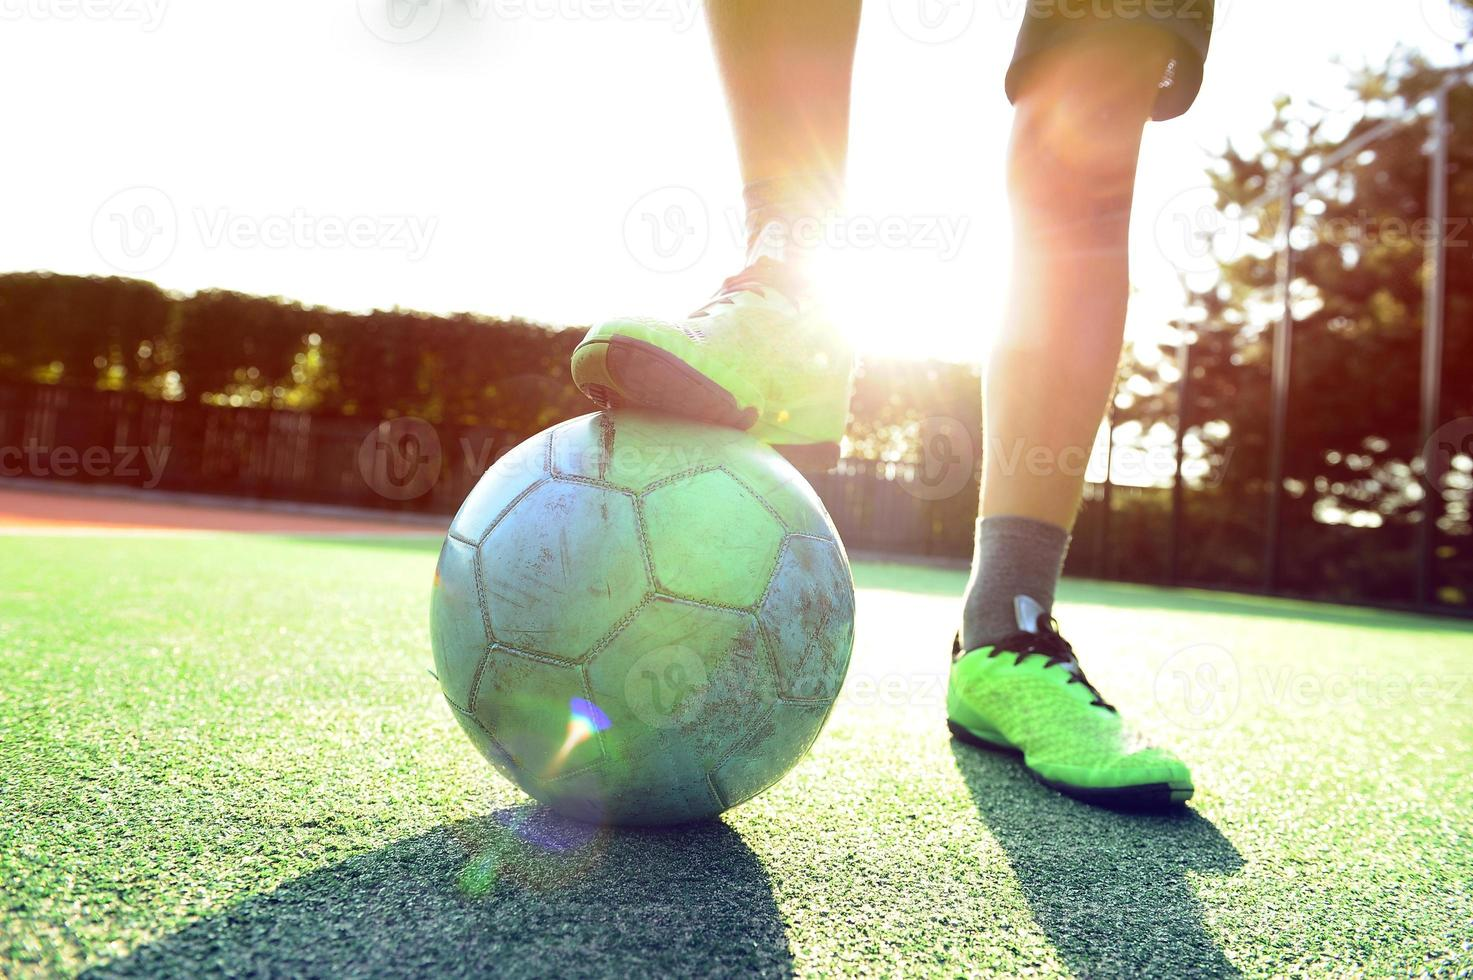 Soccer ball аnd  legs of players. photo